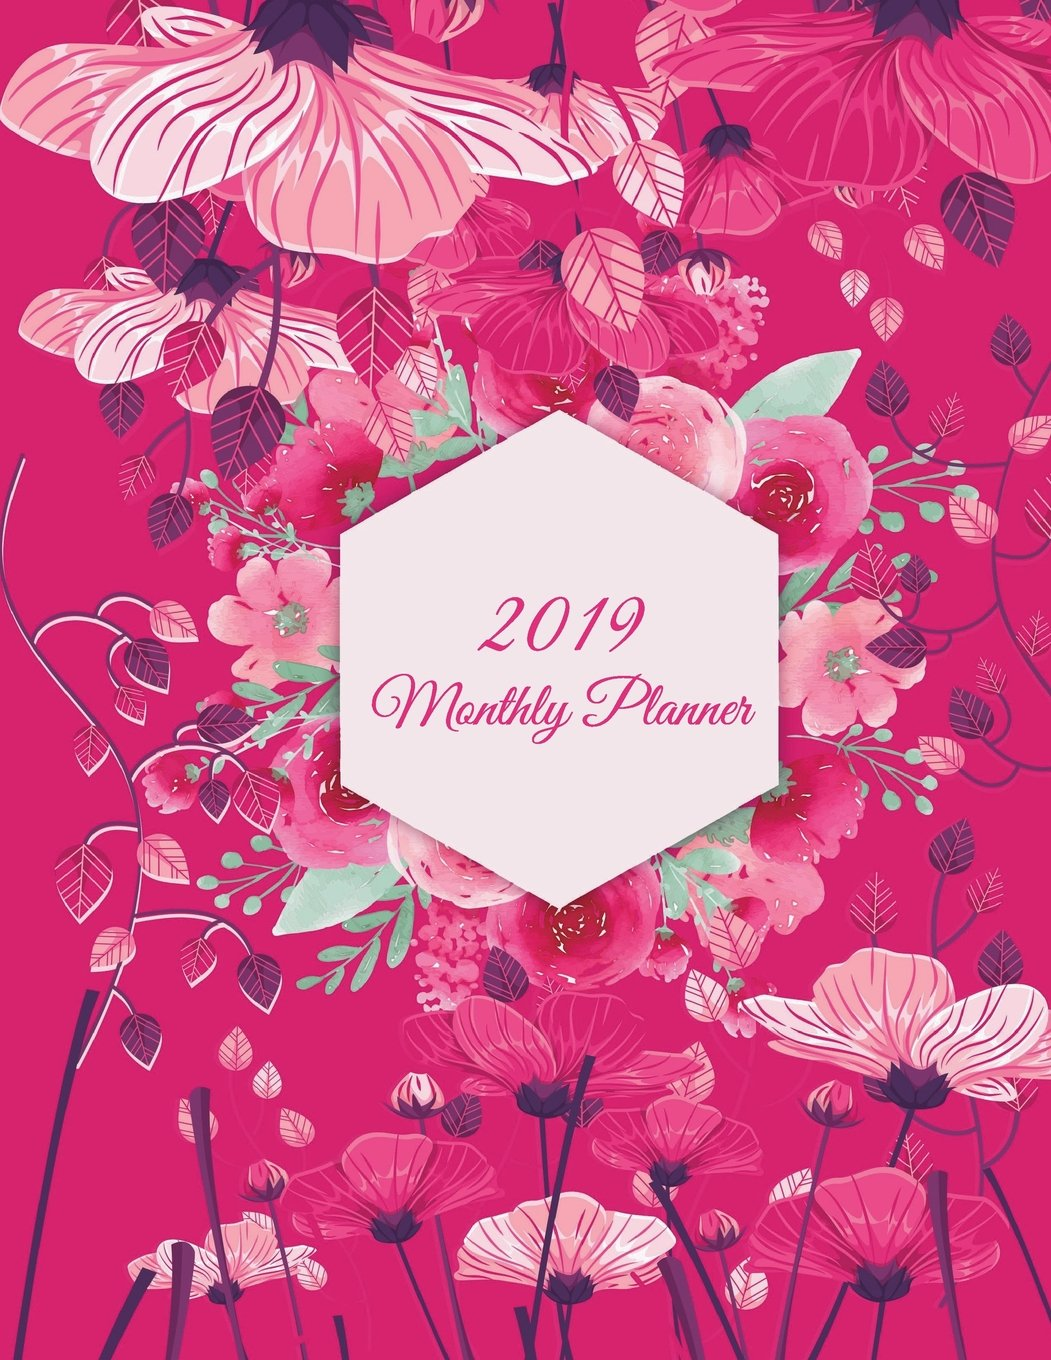 2019 Monthly Planner: Pink Flowers, Monthly Calendar Book 2019, Weekly/Monthly/Yearly Calendar Journal, Large 8.5 x 11 365 Daily journal Planner, 12 ... Agenda Planner, Calendar Schedule Organizer Paperback – June 22, 2018 Rose & Sky Planners 1722162120 ED